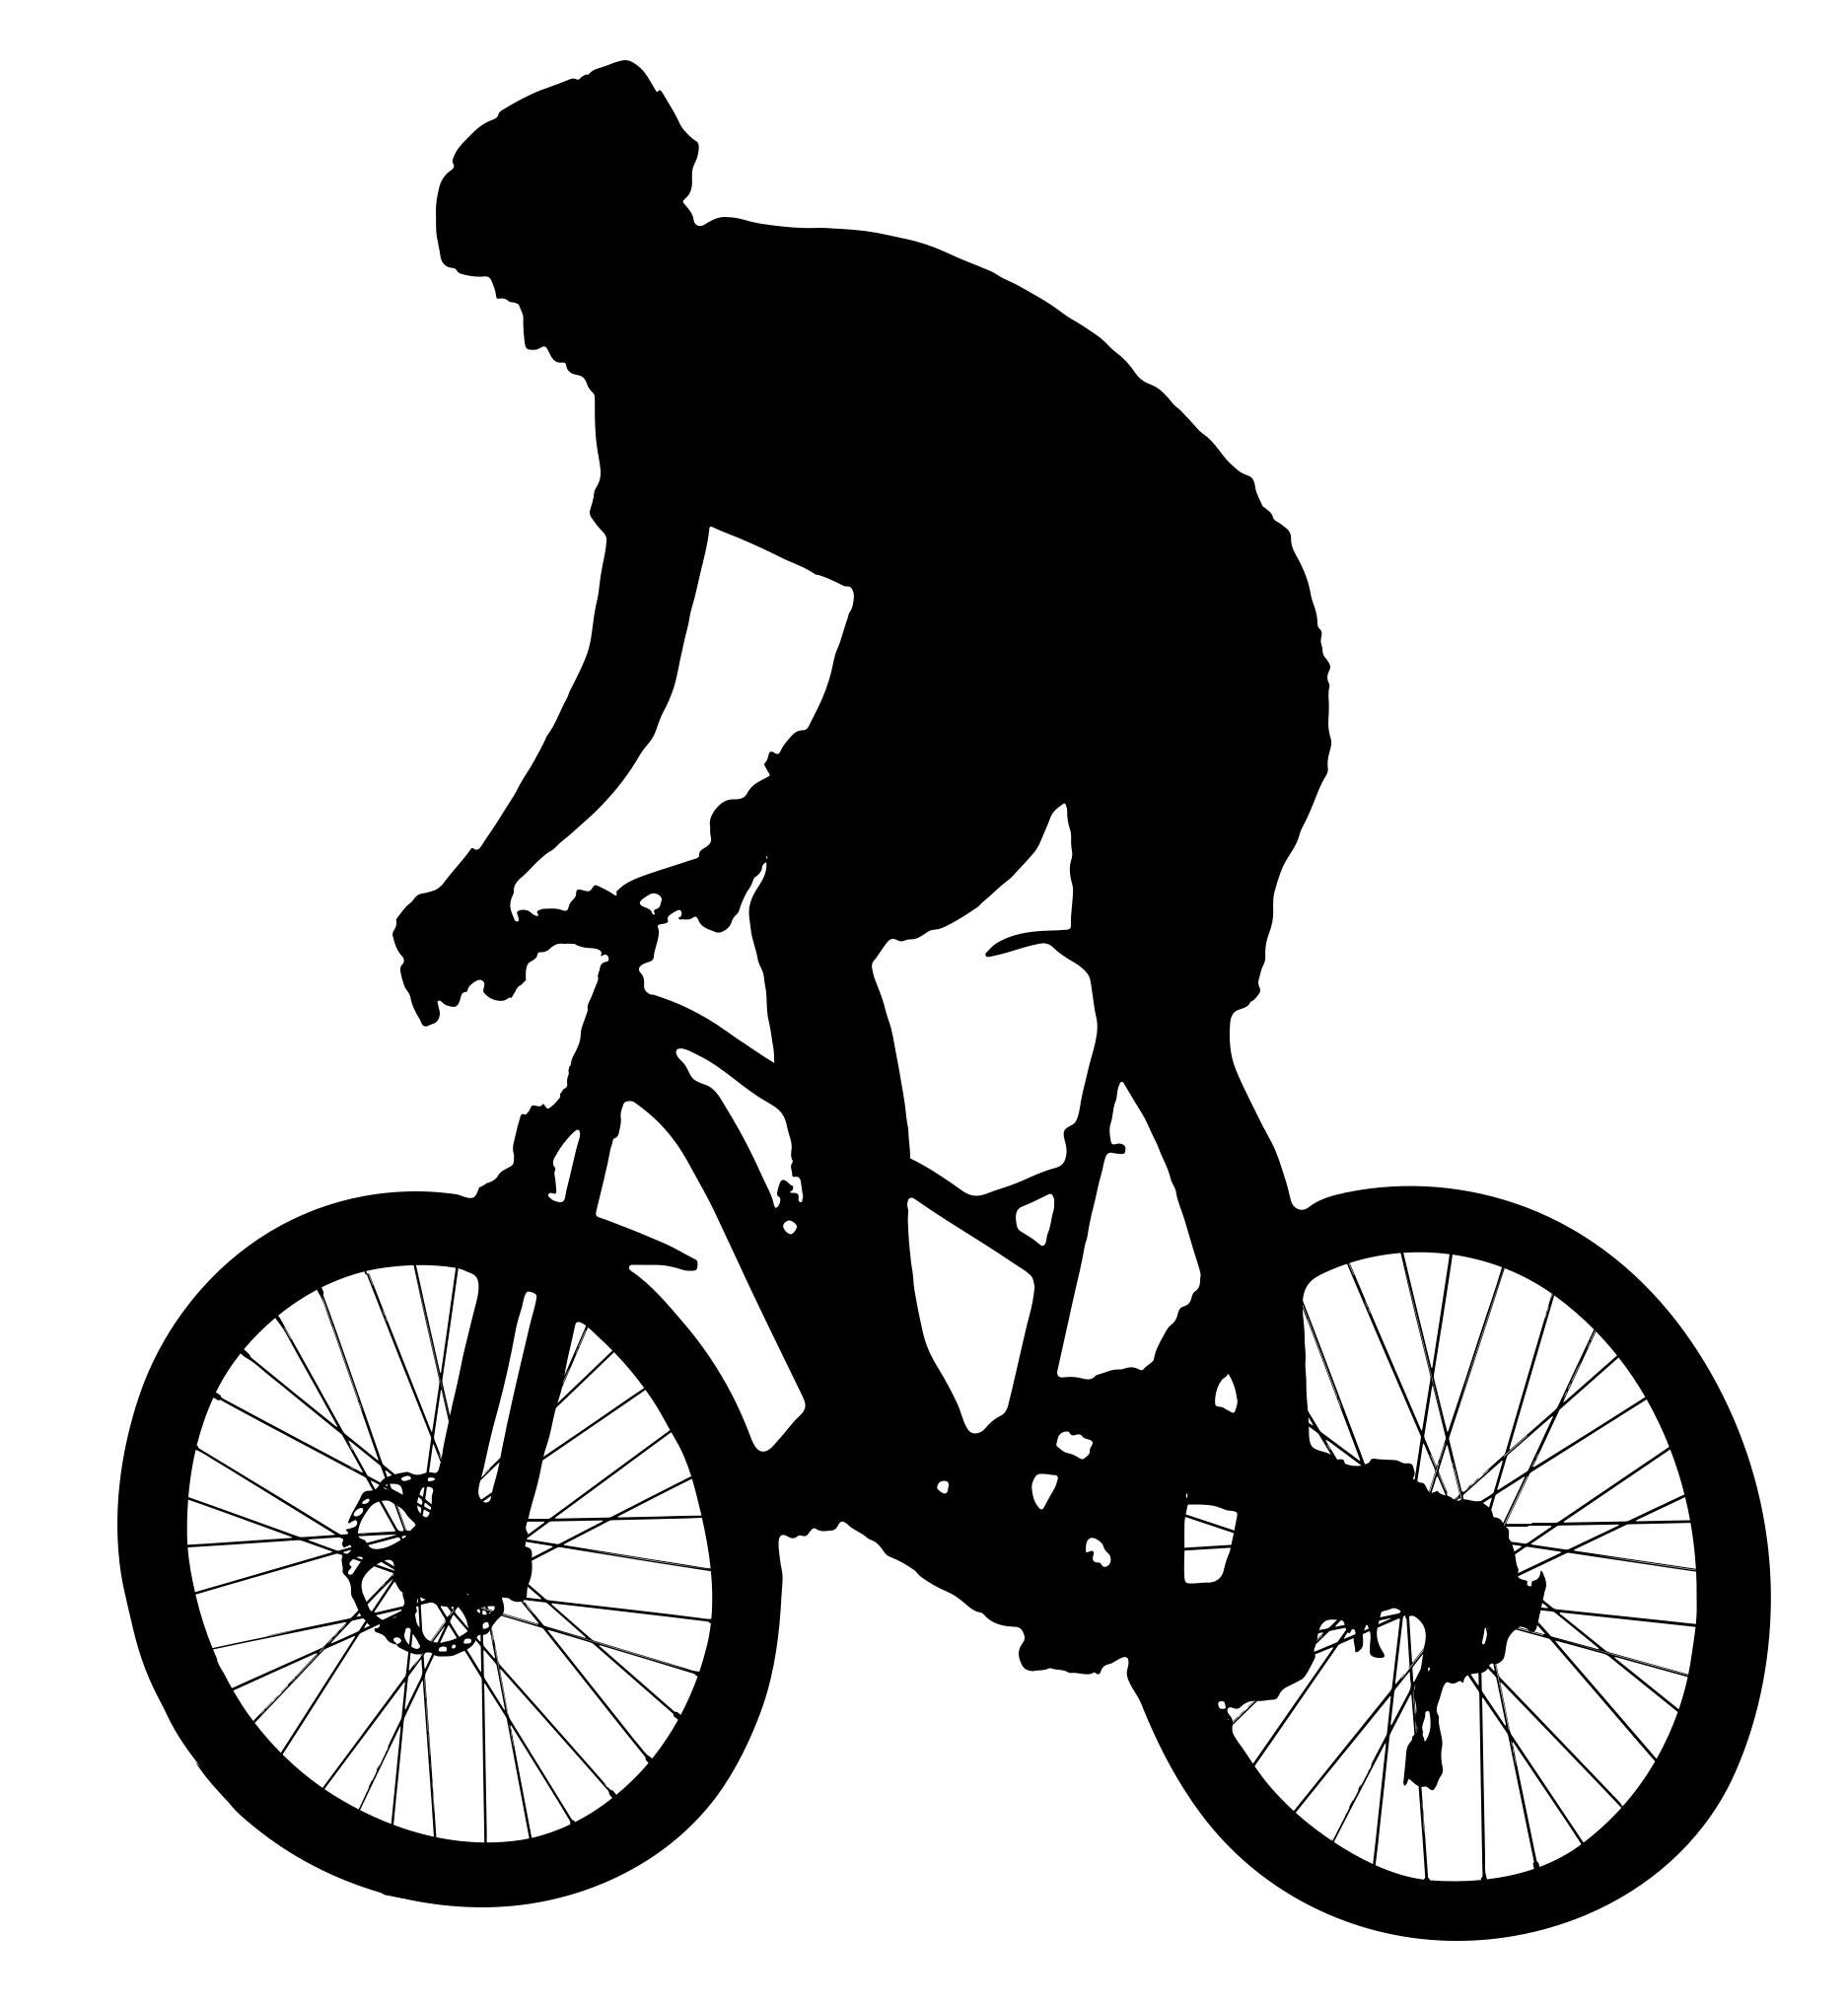 Bike clipart silhouette. Man racing on design